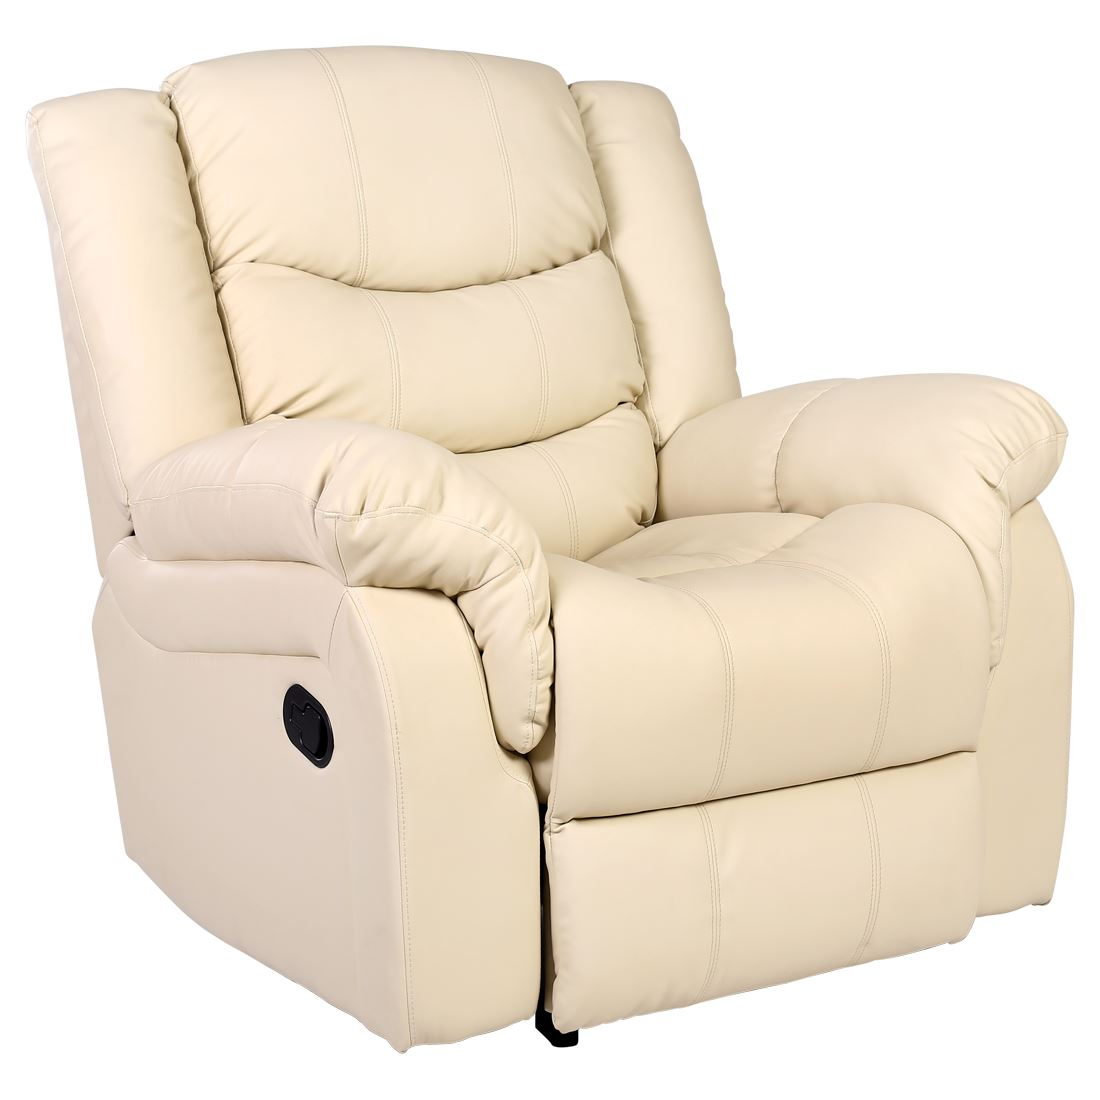 SEATTLE CREAM LEATHER RECLINER ARMCHAIR SOFA HOME LOUNGE ...